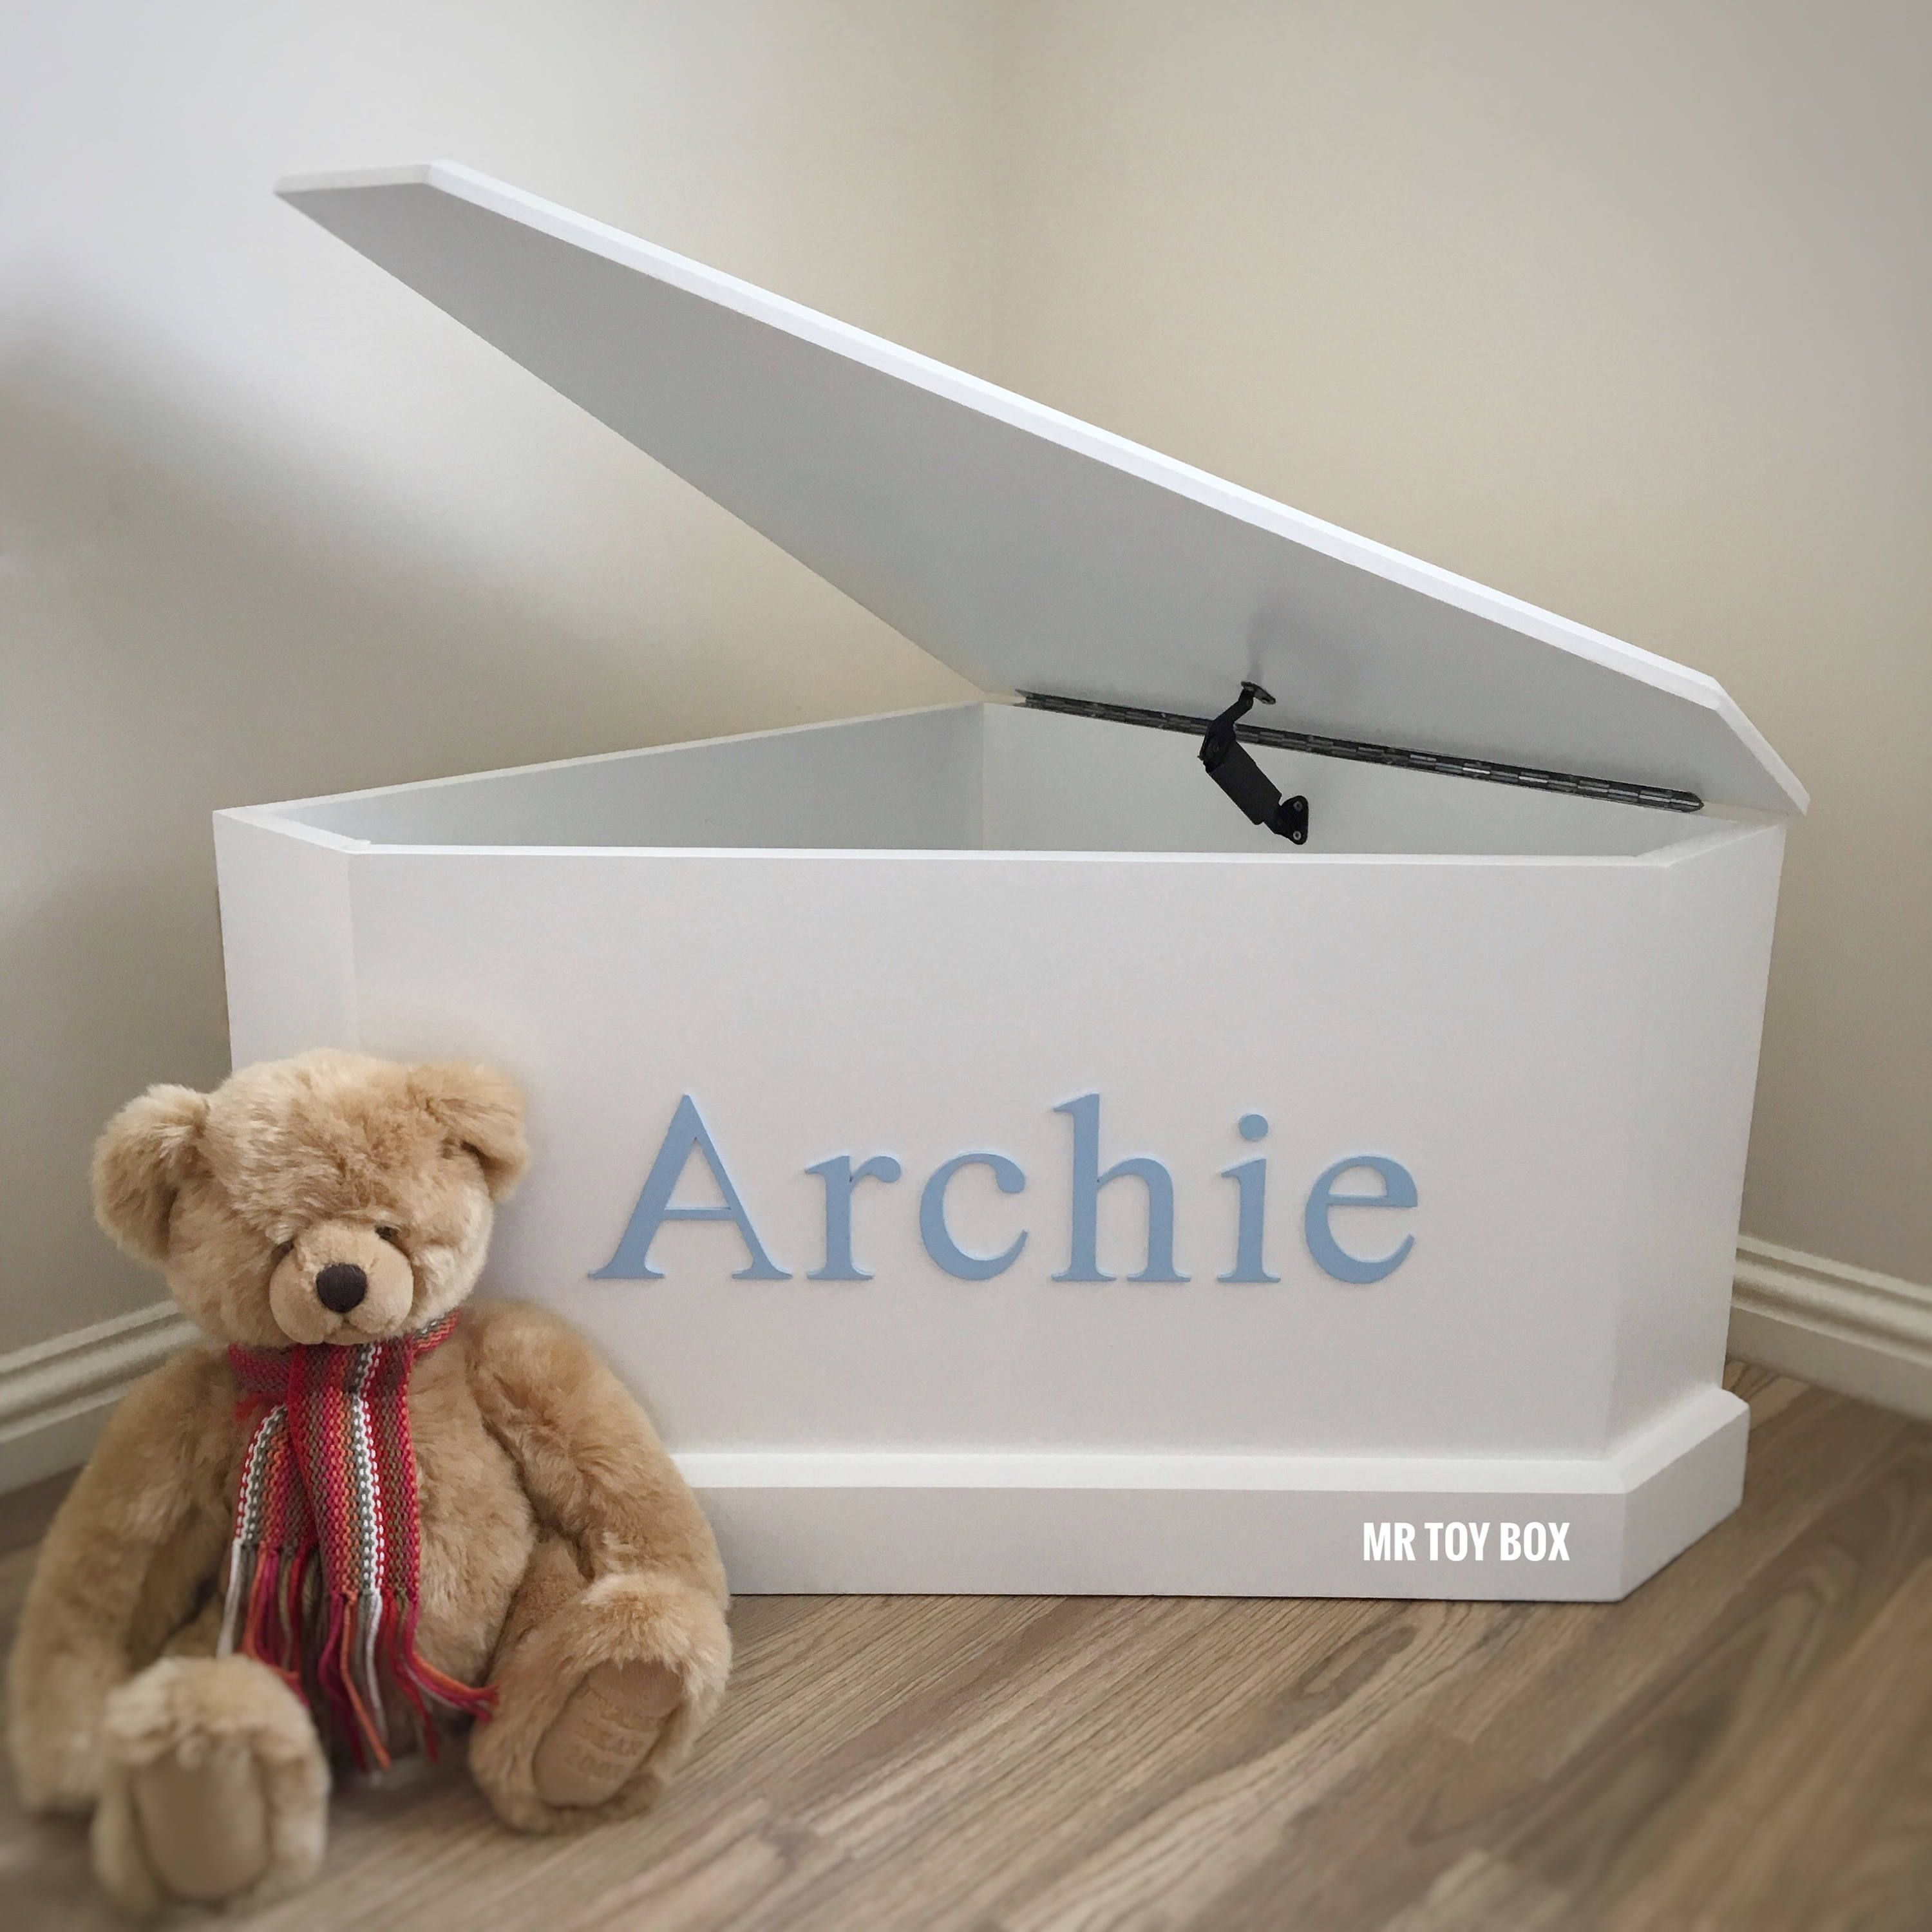 Toy Storage, Corner Storage, Storage Boxes, Personalised Toy Box, Toy  Boxes, Content, Campaign, Toy Storage Solutions, Corner Pantry